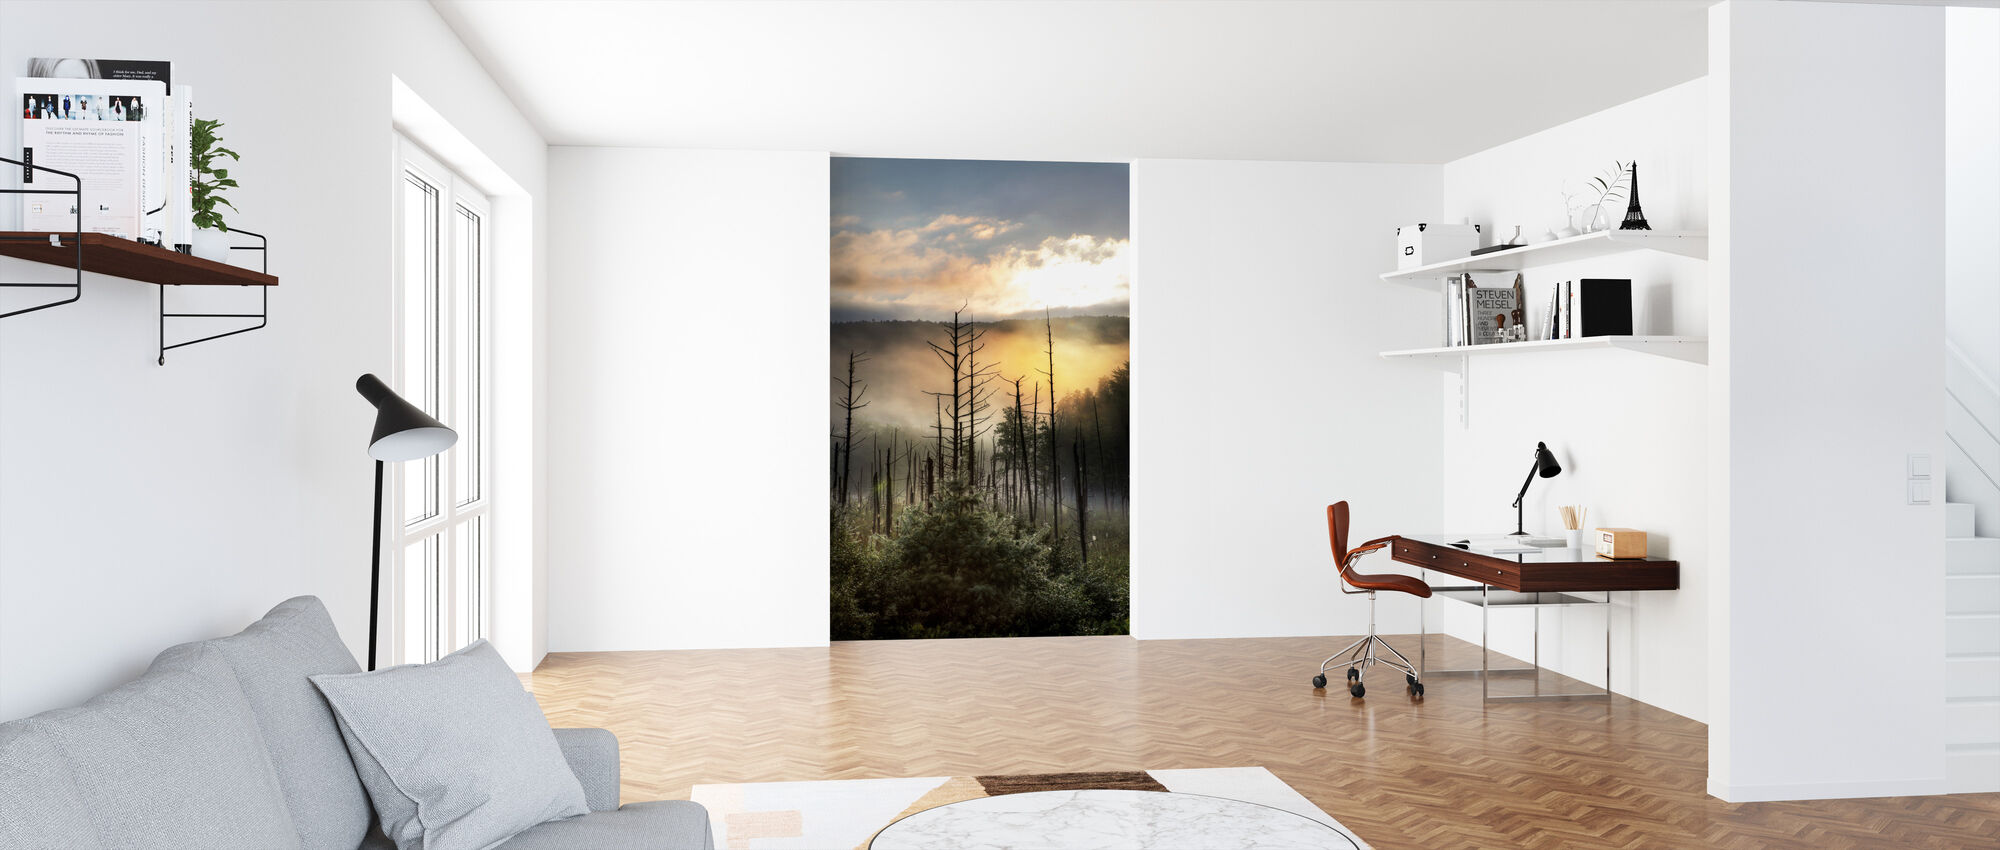 Vermont Swamp at Sunrise - Wallpaper - Office